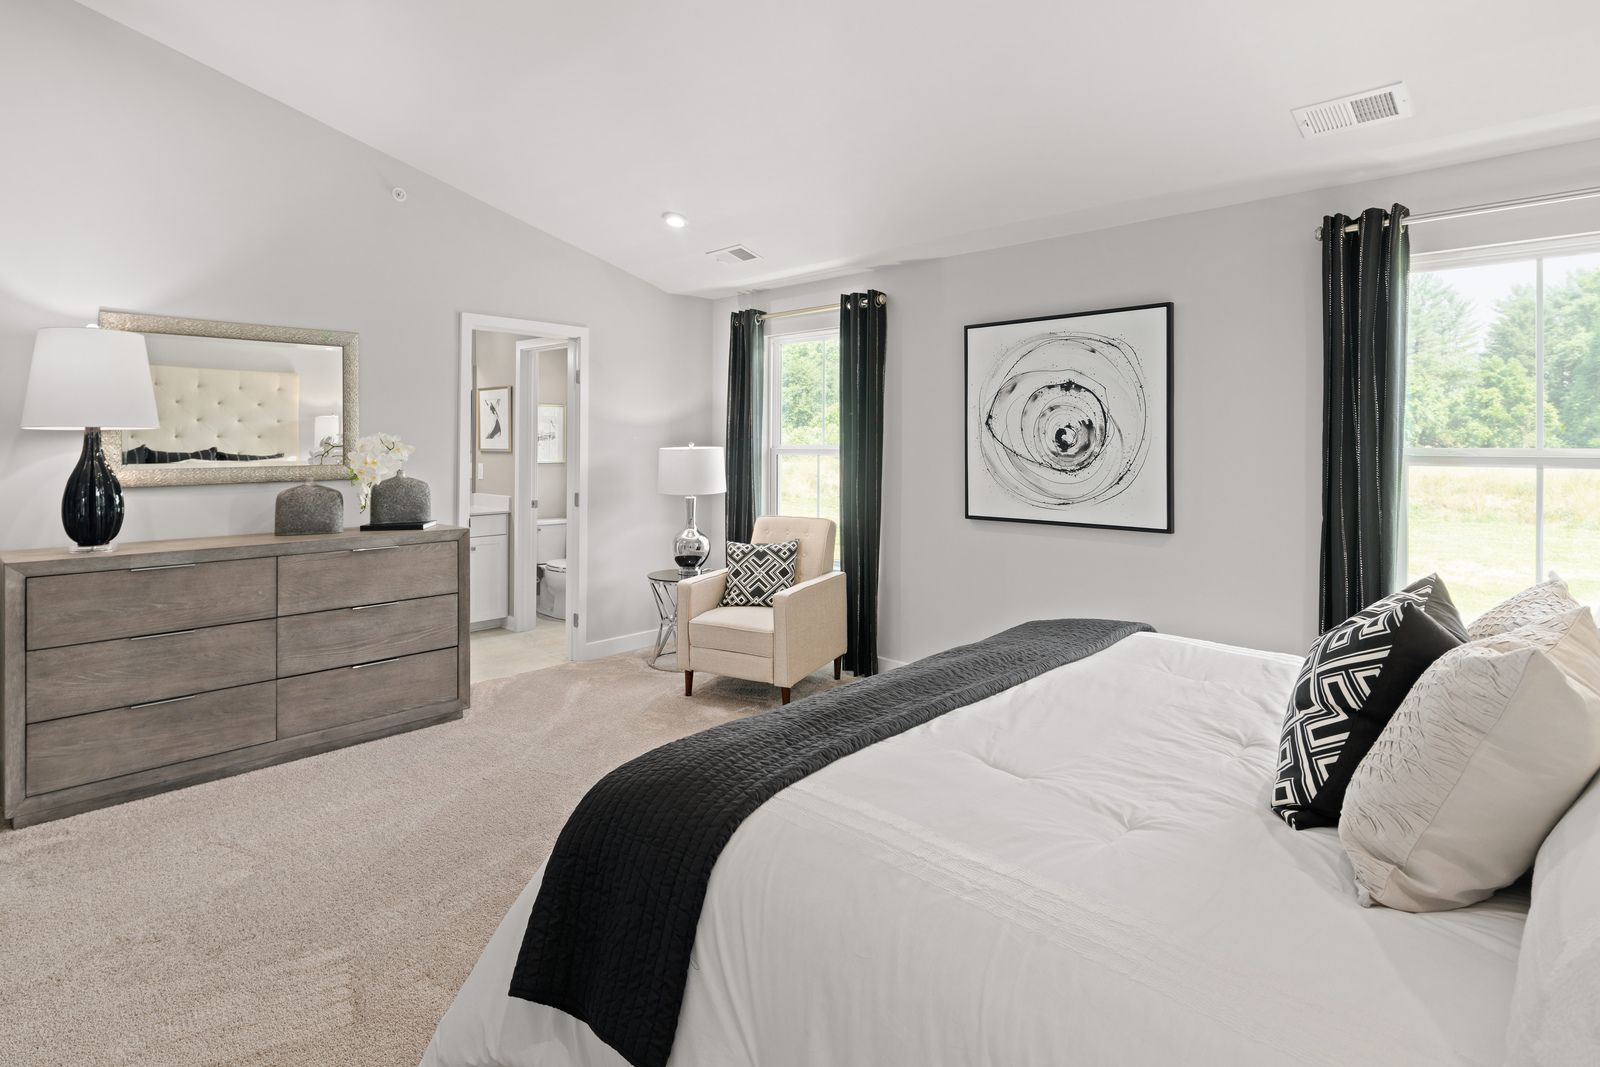 Bedroom featured in the Waldorf By Ryan Homes in Philadelphia, PA